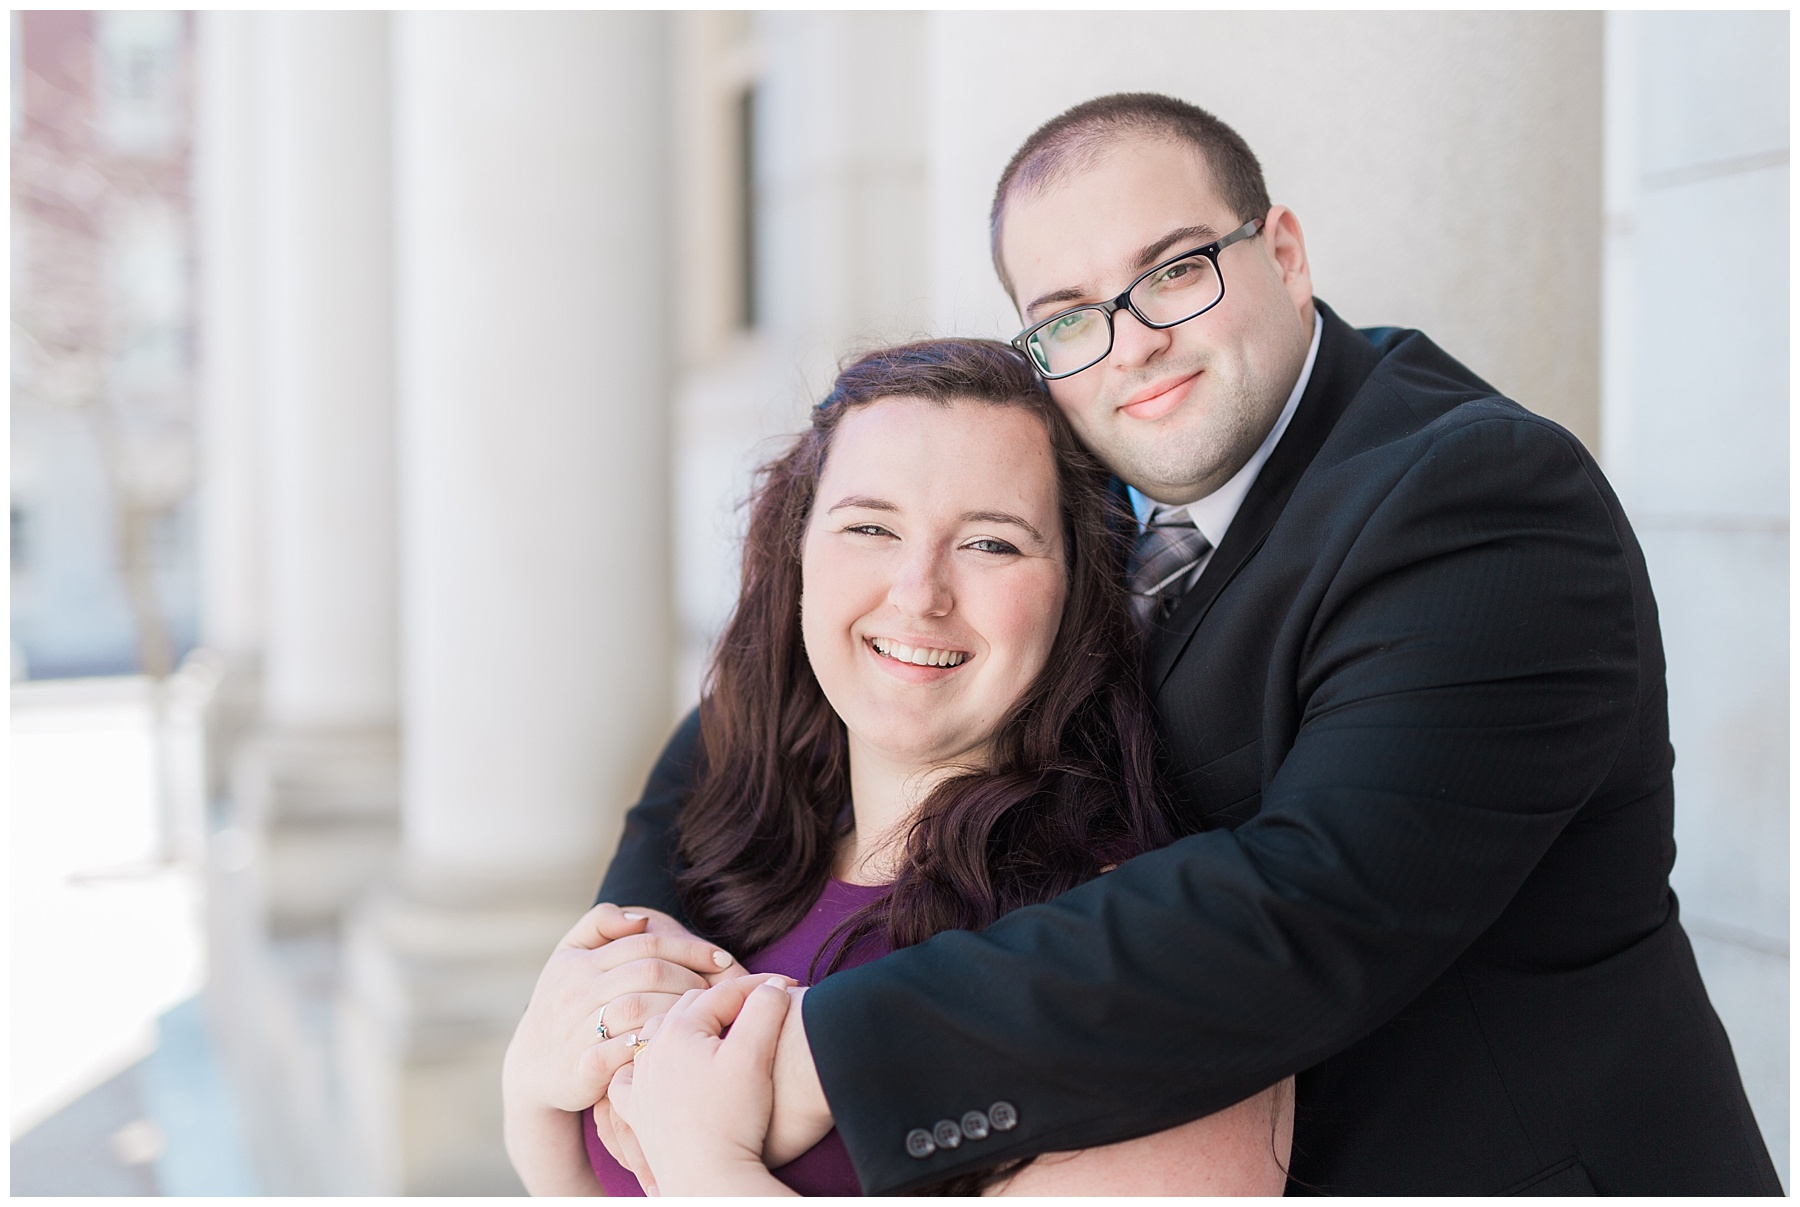 plus size couple in wedding attire taking wedding photos in downtown portland maine at city hall doing engagement photos